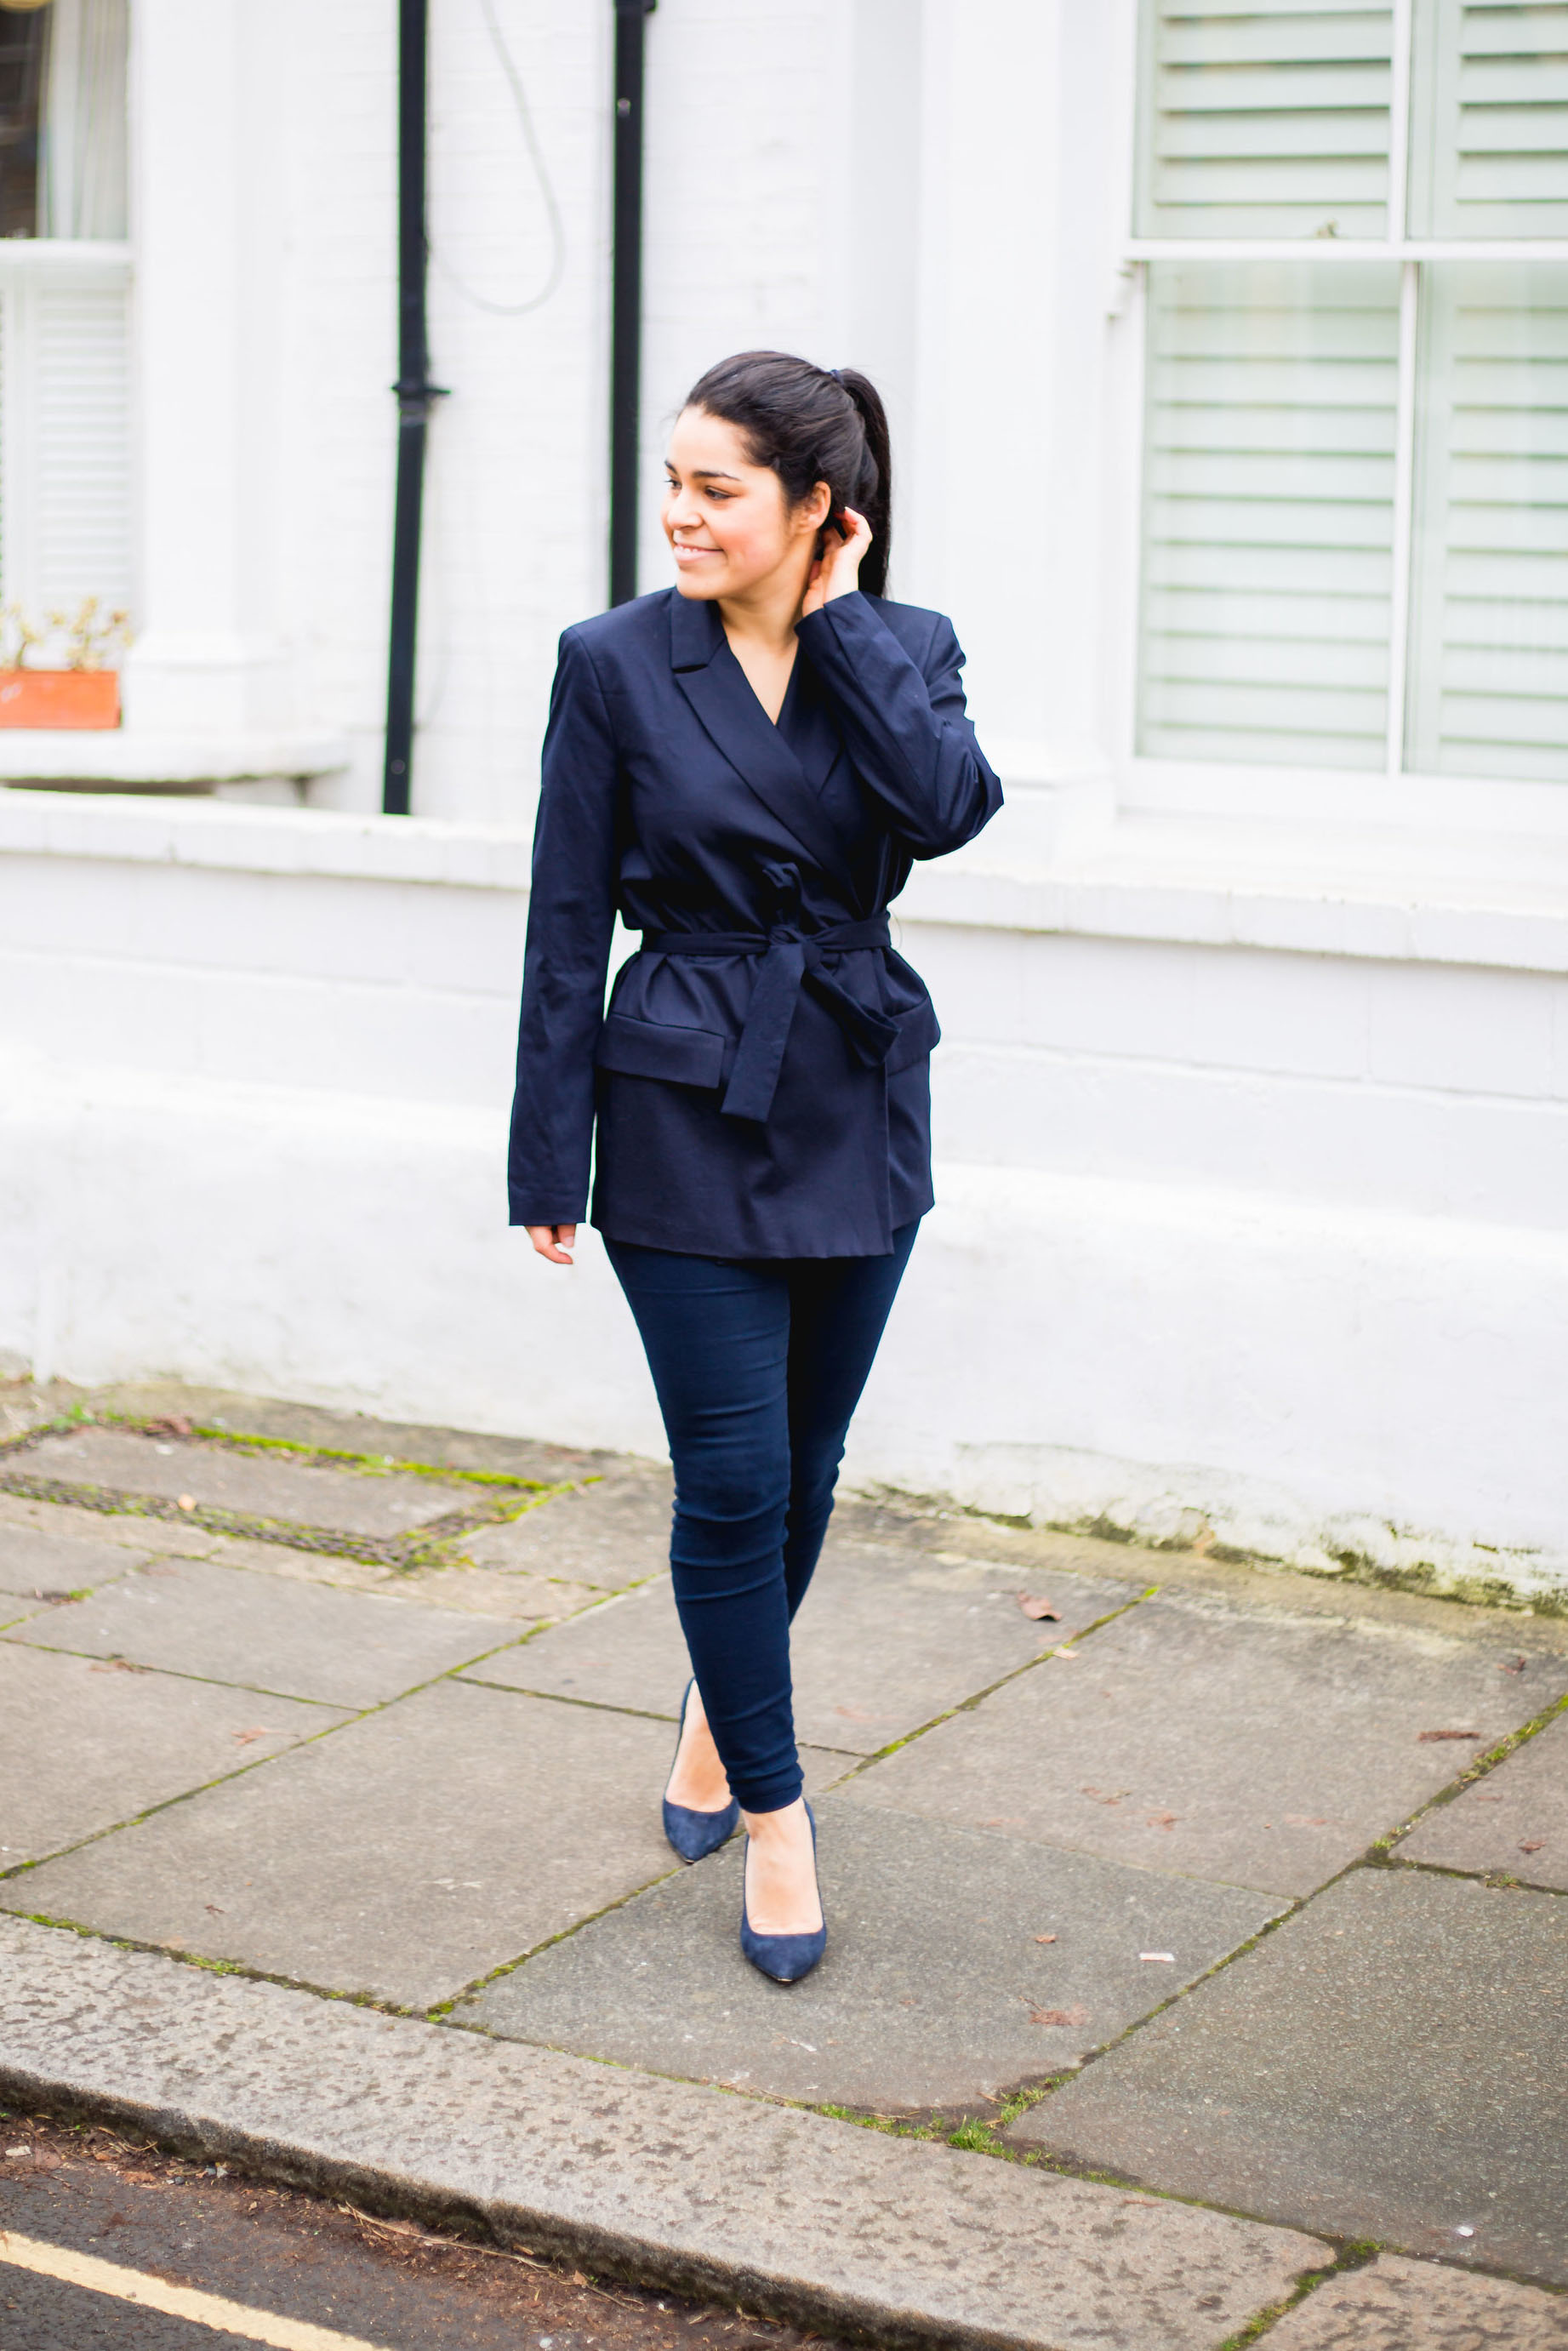 The Navy Blazer